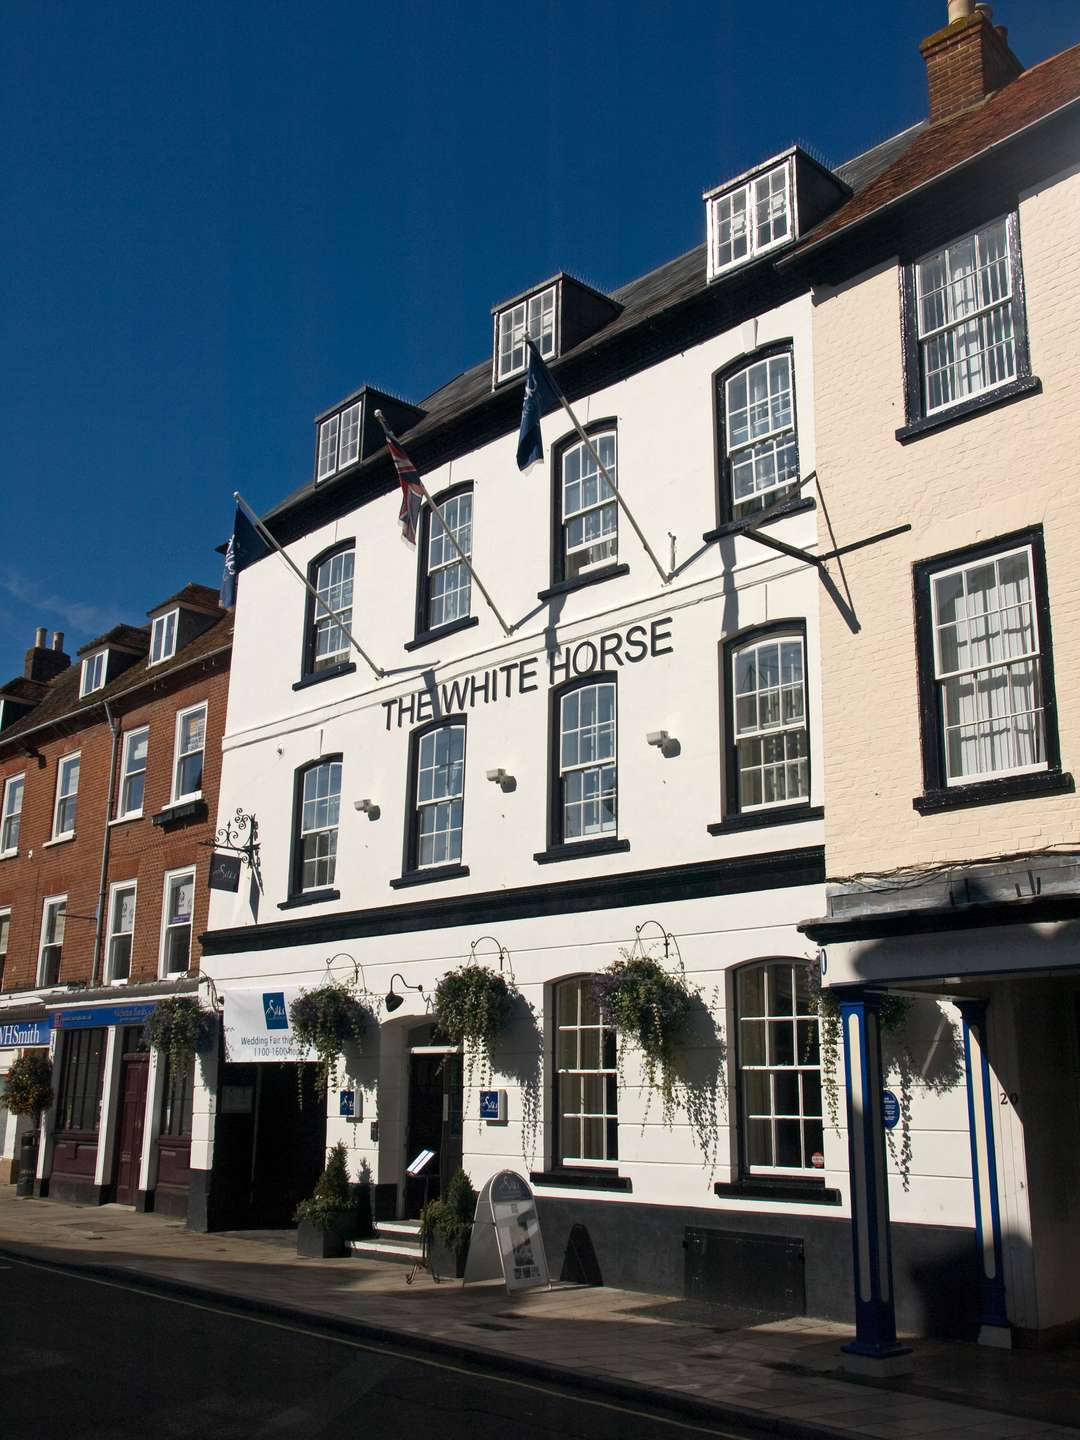 The White Horse Hotel Brasserie 19 Market Place Romsey Properties For Sale Savills